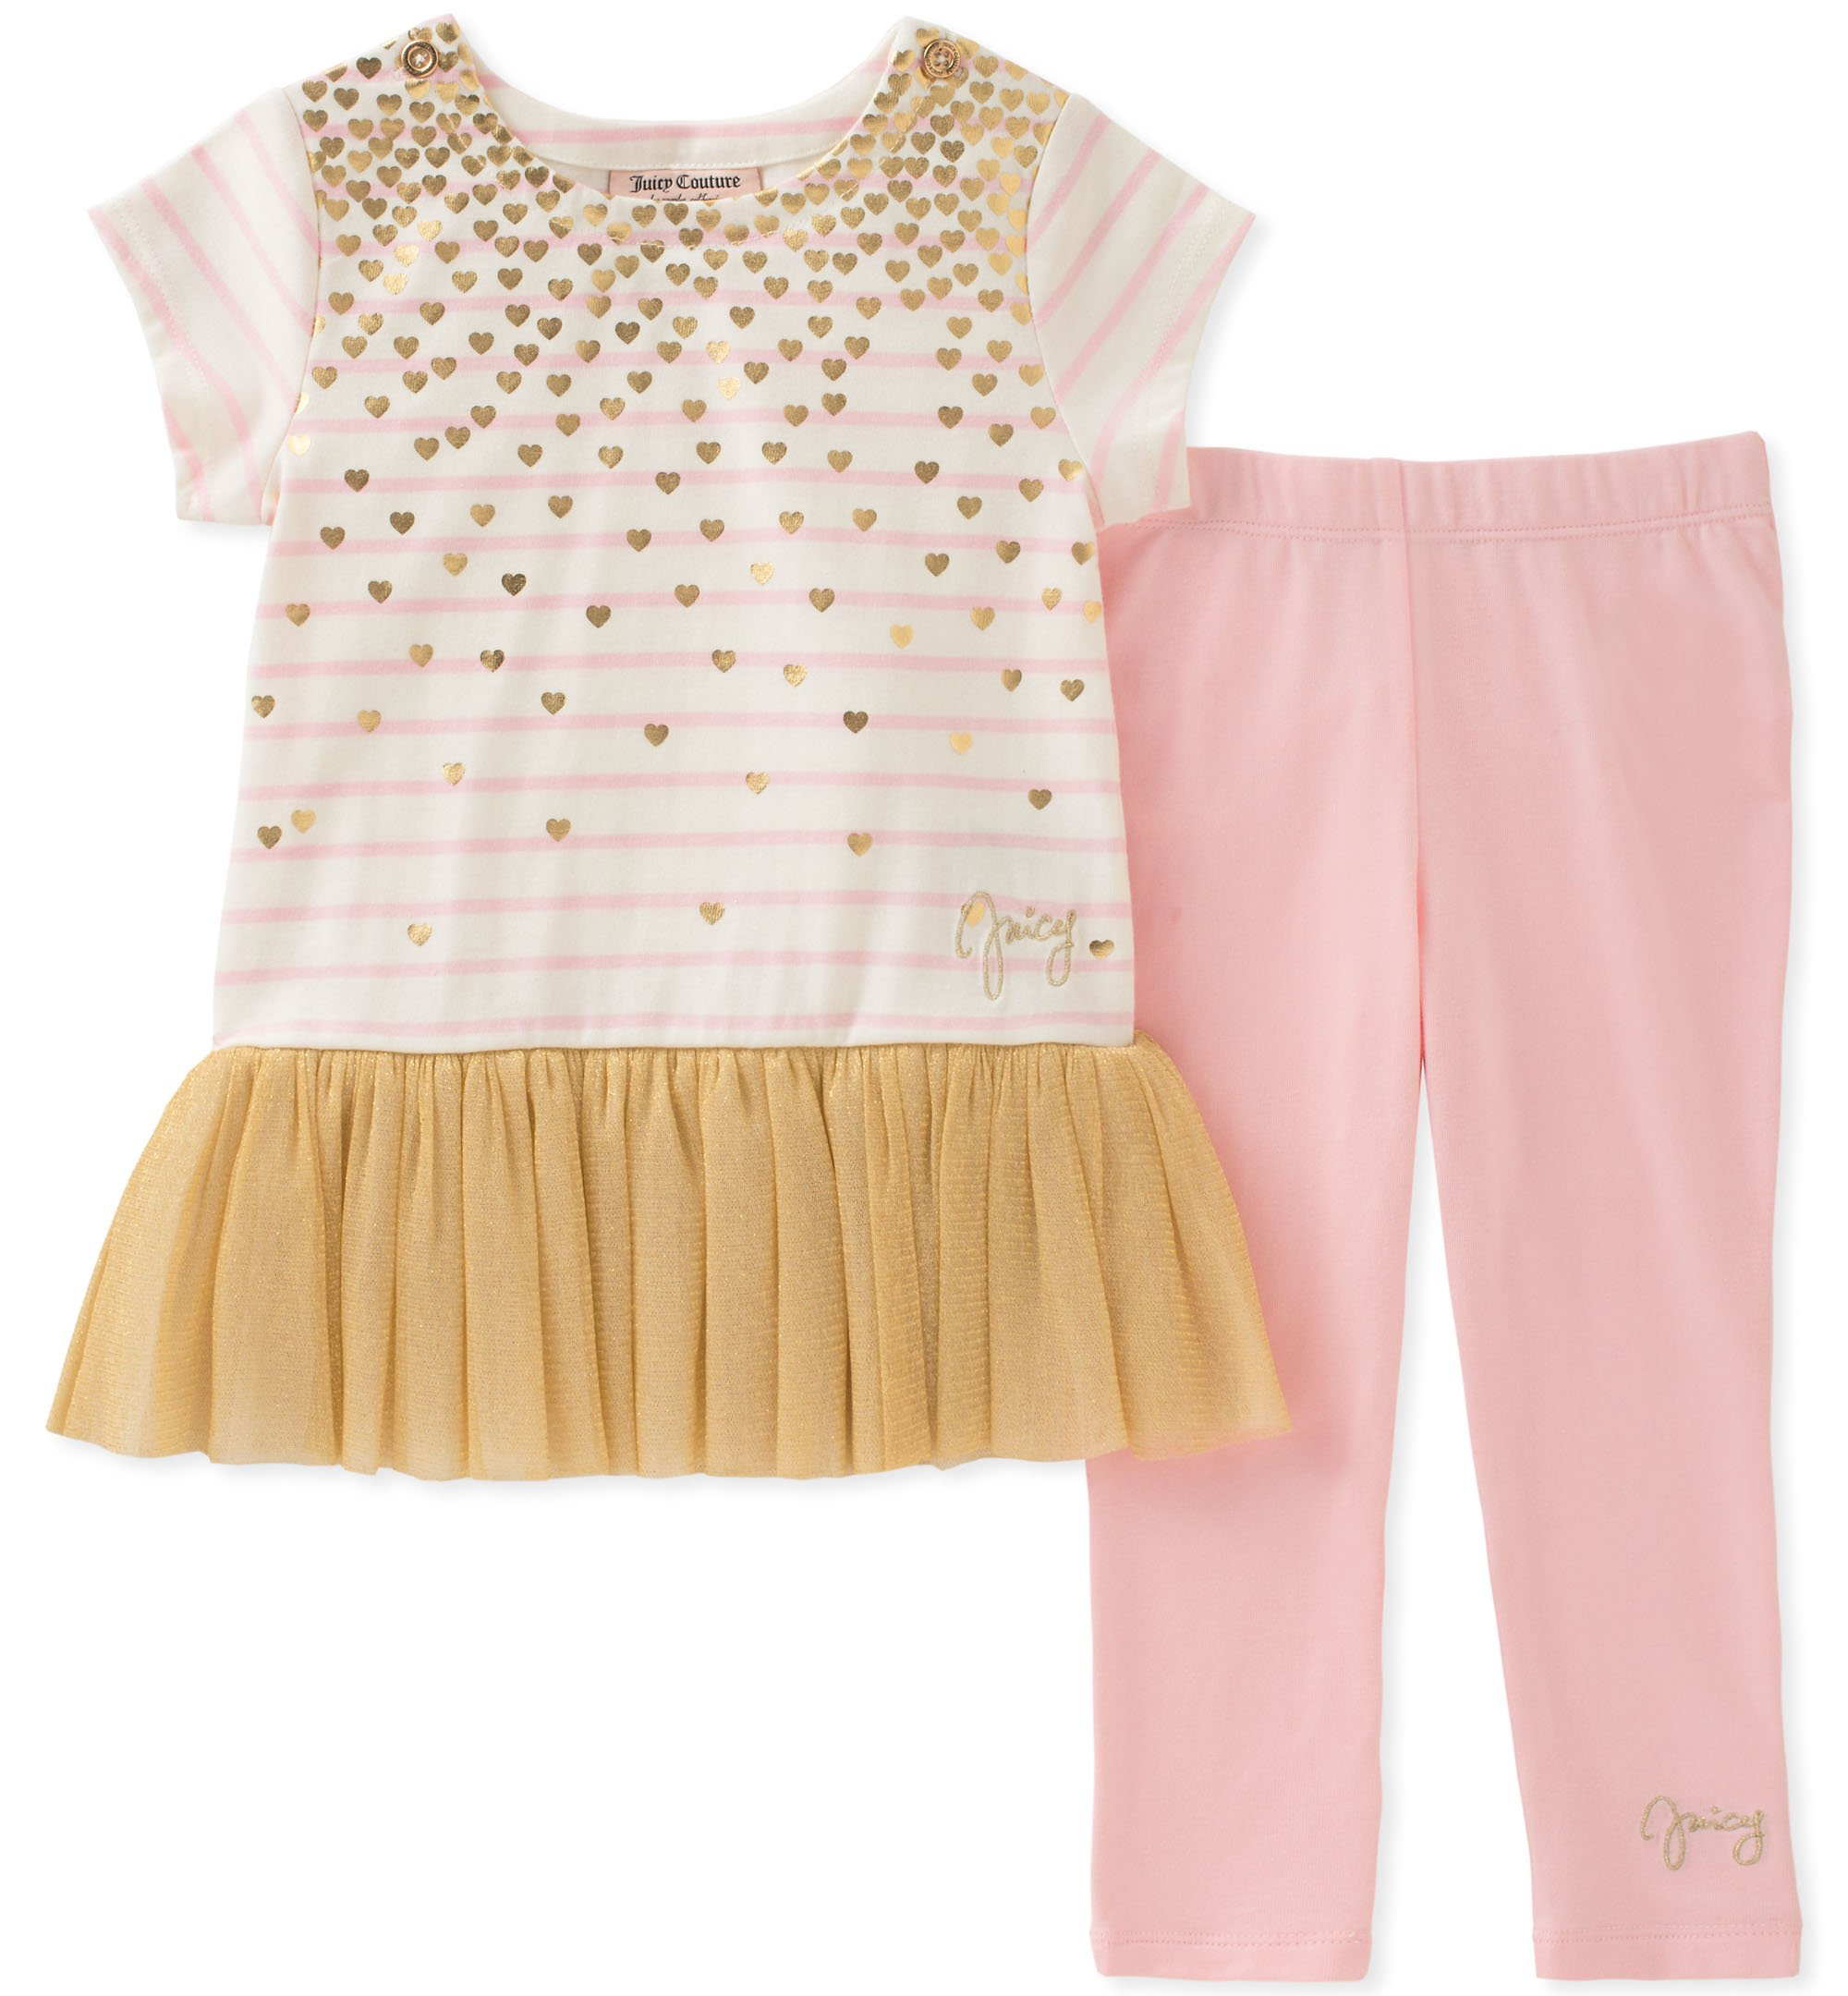 Juicy Couture Girls' Toddler 2 Pieces Tunic Set, Gold/Pink, 3T